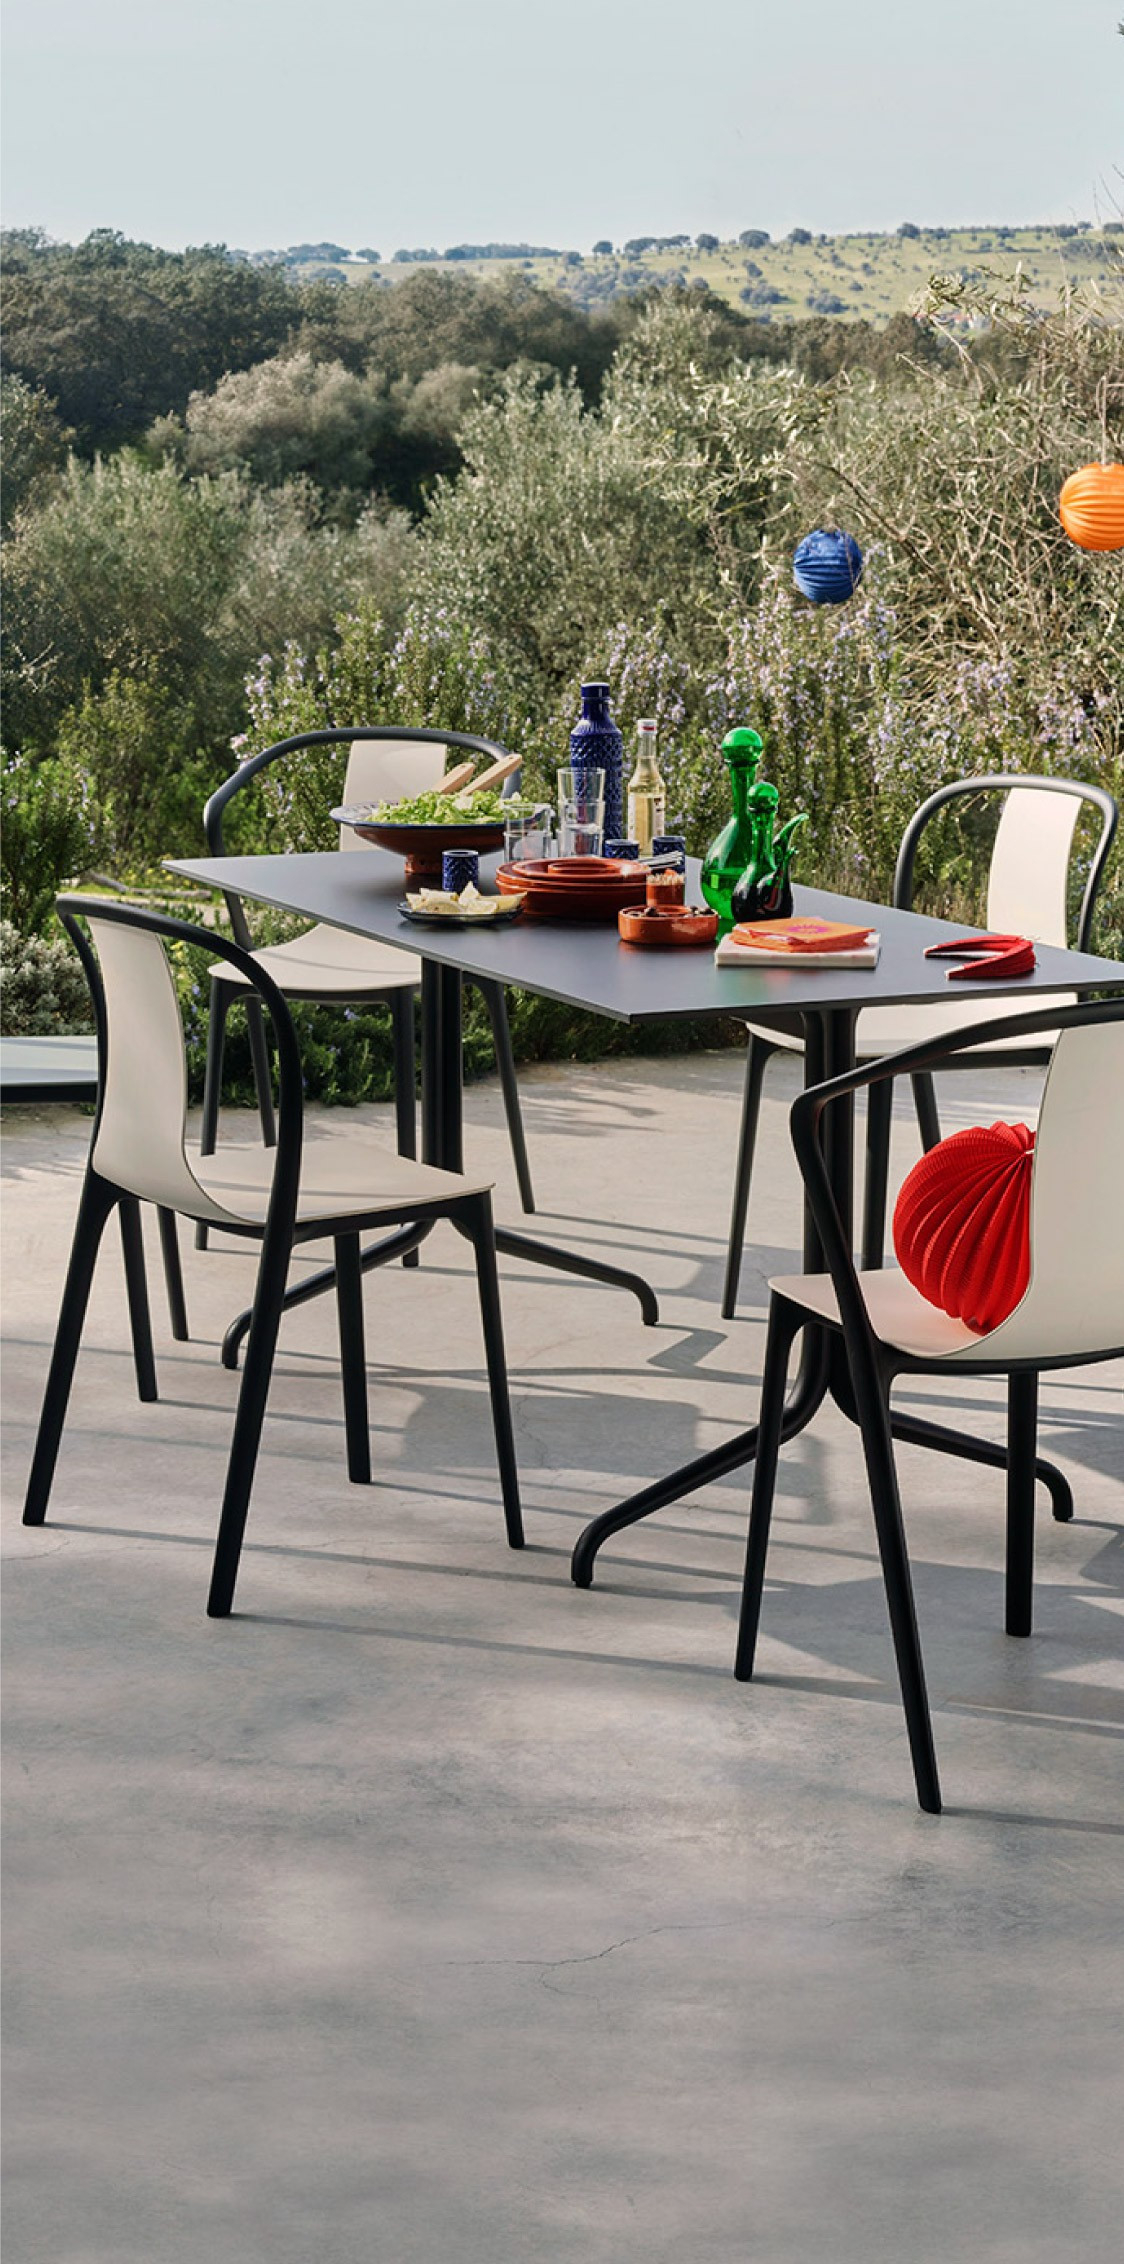 Outdoor Furniture Omaha Awesome Patio Furniture Omaha Nebraska For Size  1124 X 2264